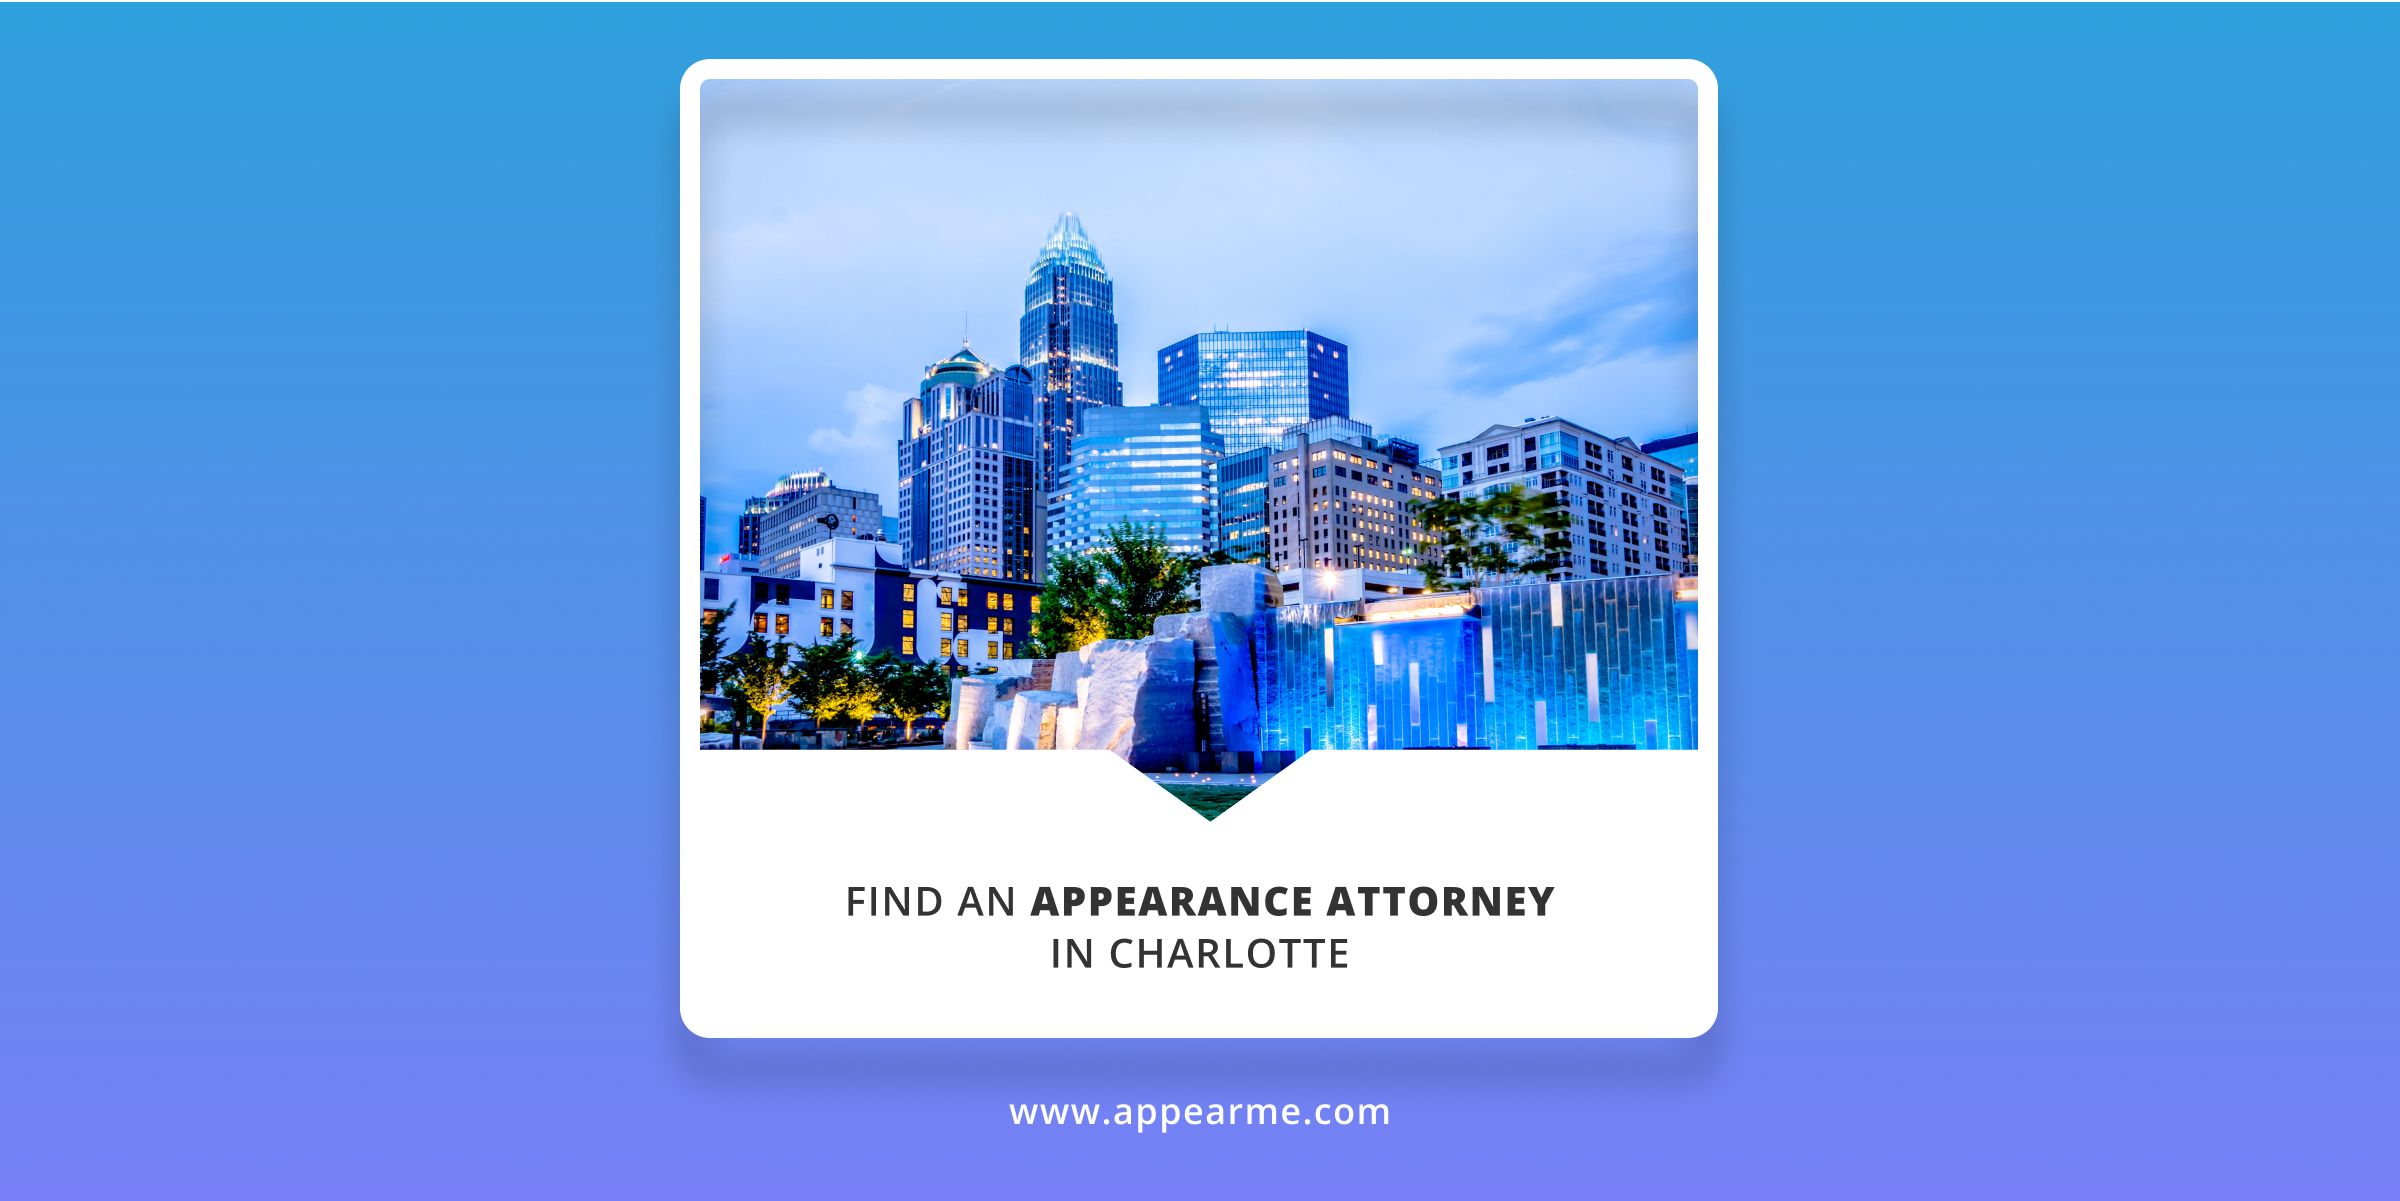 AppearMe: Easily Find an Appearance Attorney in Charlotte